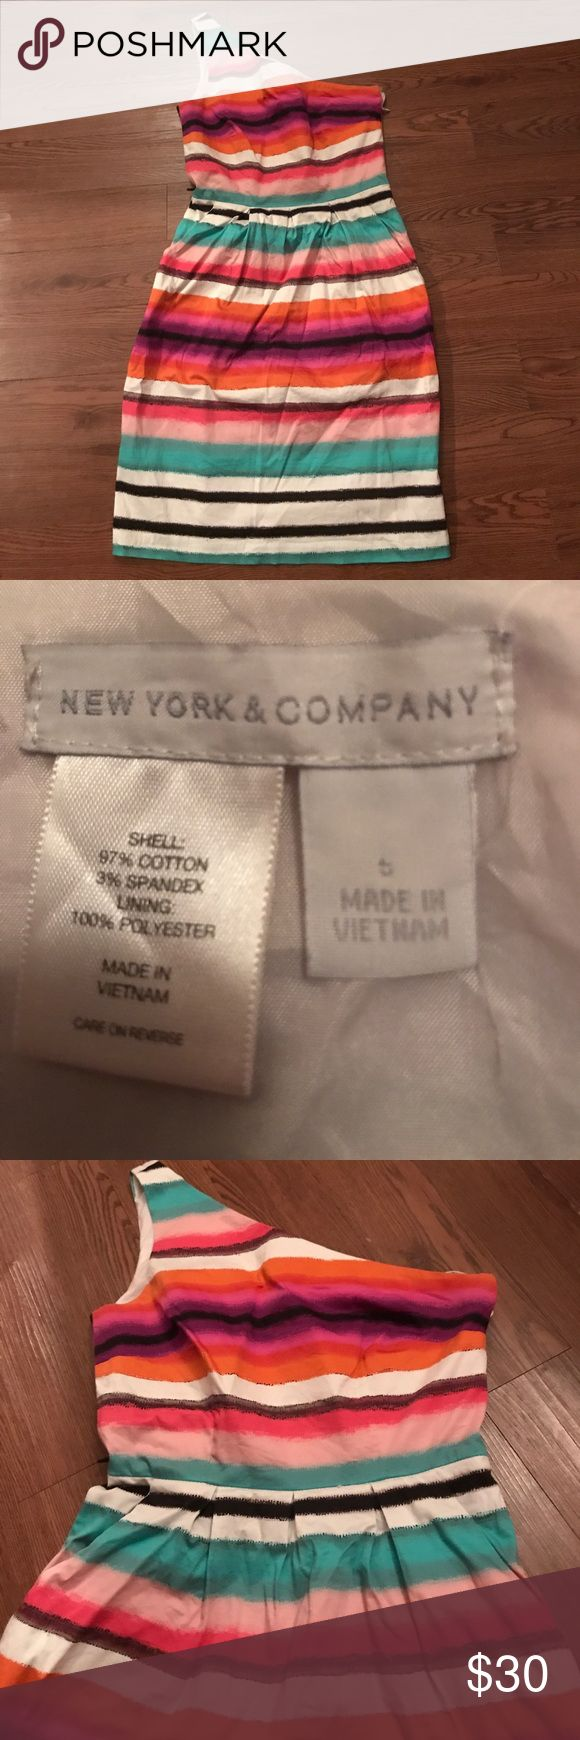 NY&CO one strap dress Gorgeous dress. Worn to a wedding once. New York & Company Dresses